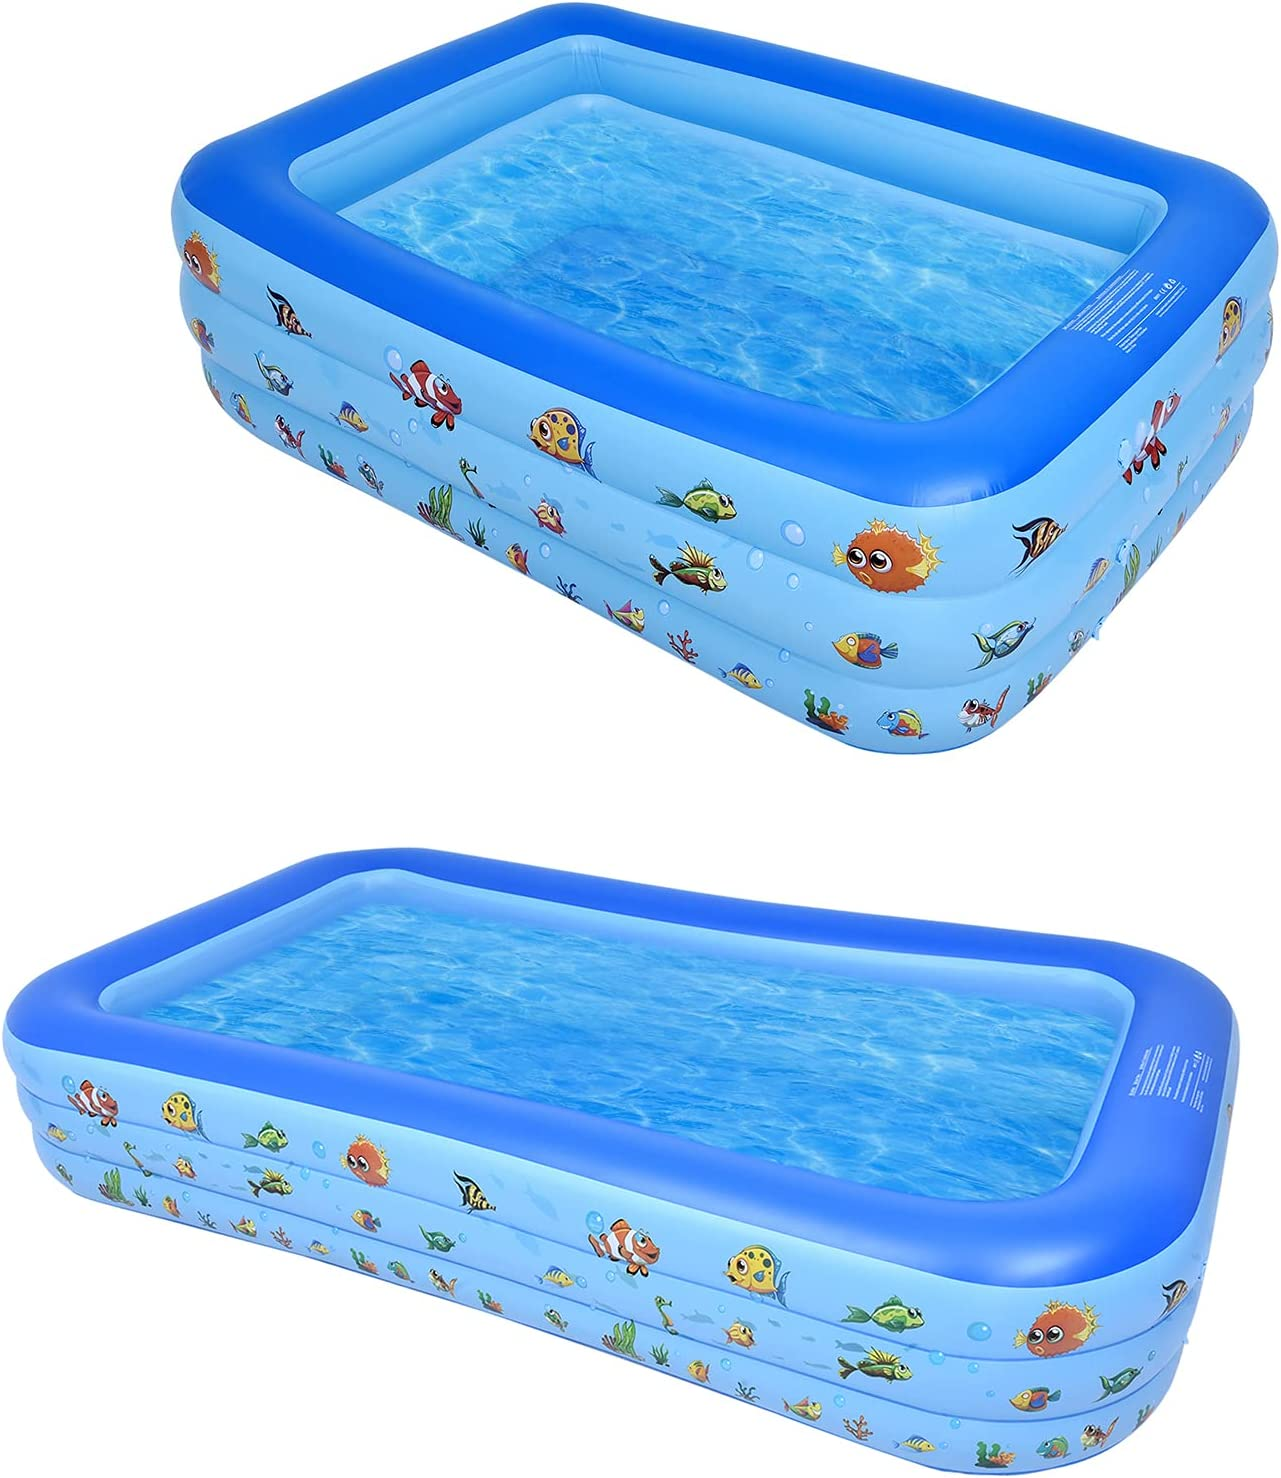 Inflatable Full-Sized Kiddie Pool Hard 2PCS Plastic Max 89% OFF f New popularity Suitable